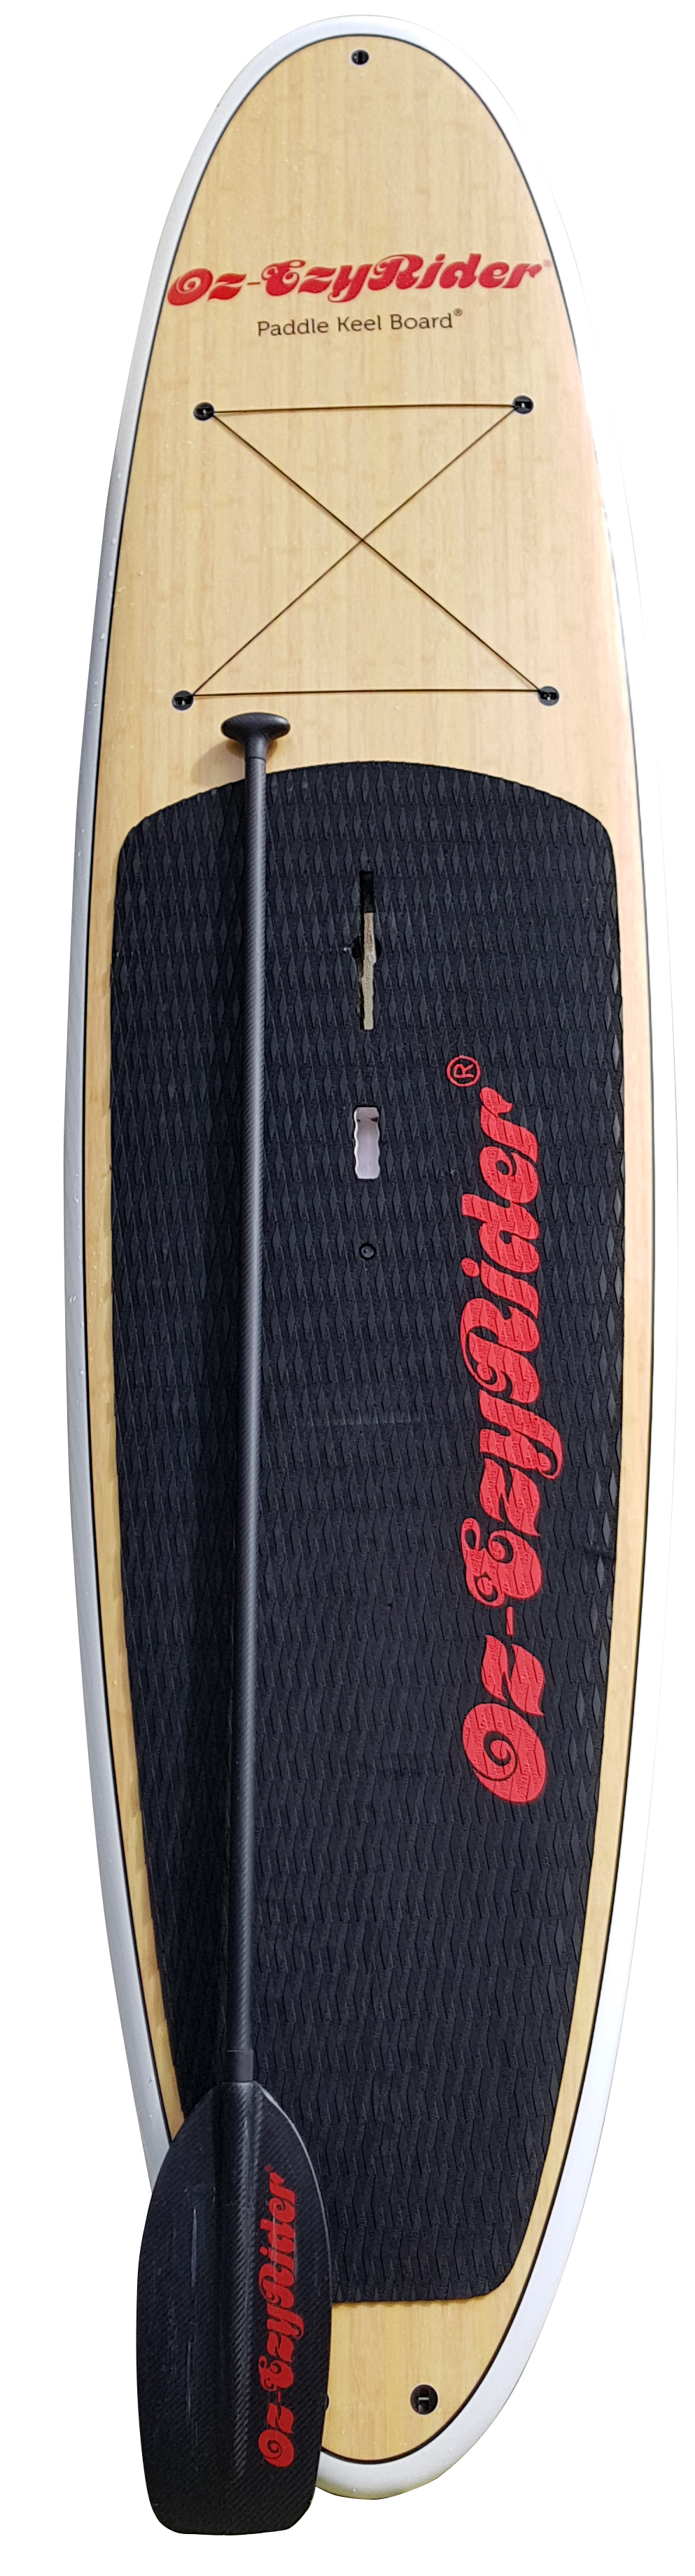 Paddle Keel Board - Tiger 11'